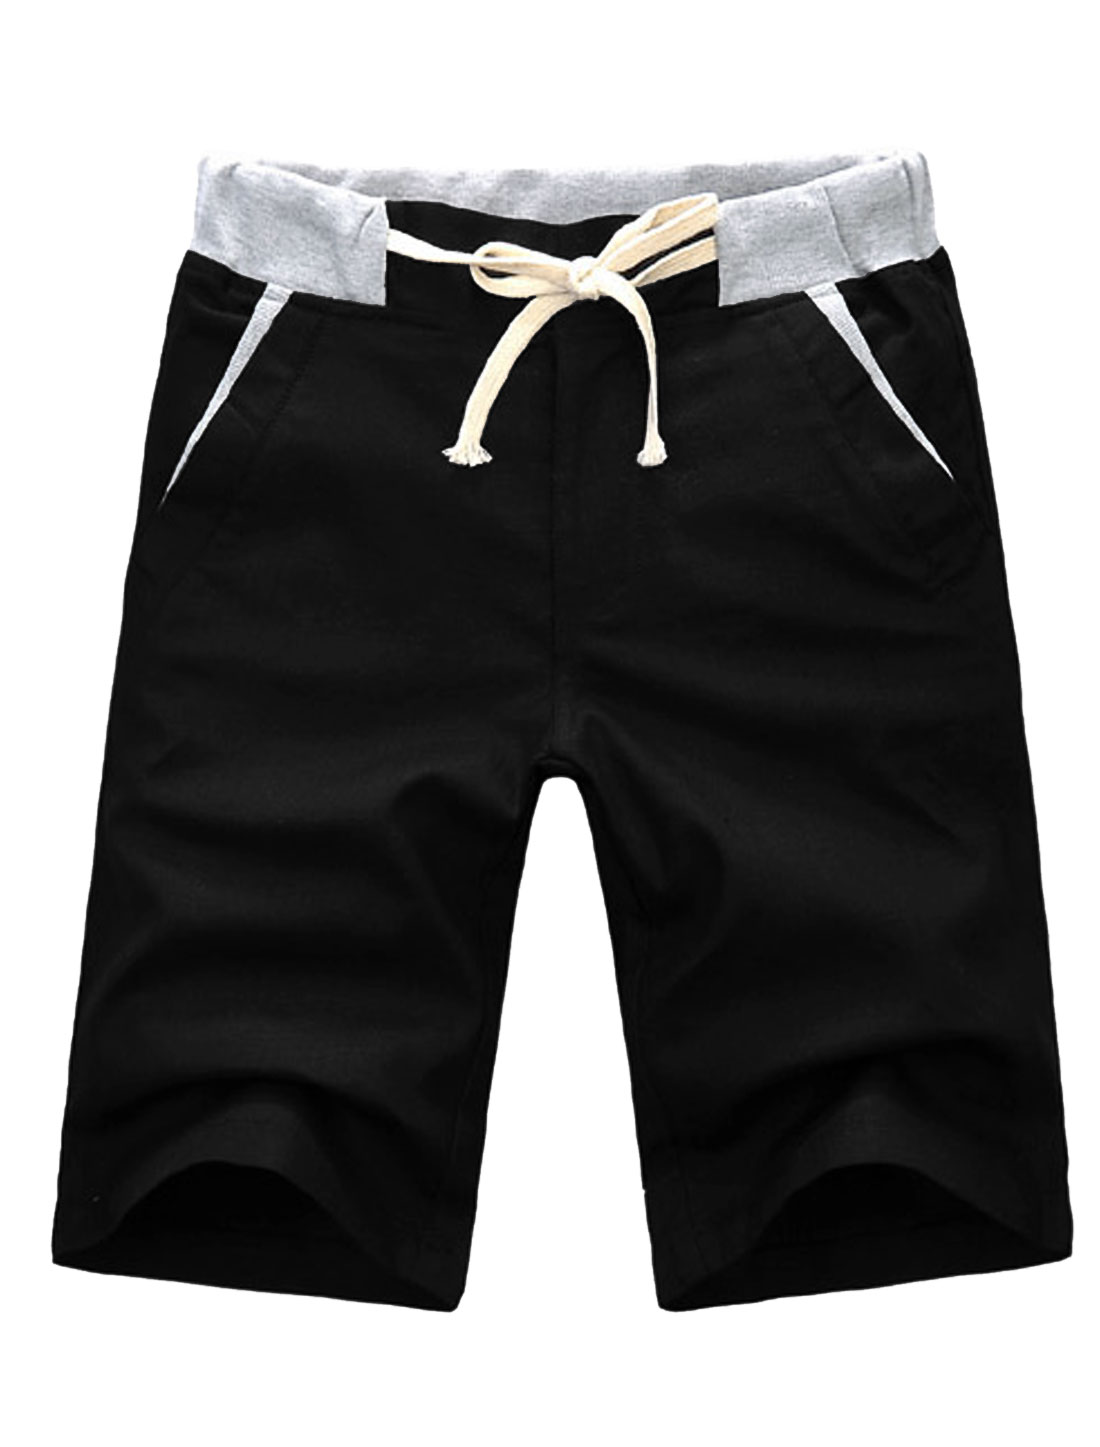 Men Mid Rise Drawstring Waist Front Pockets Linen Shorts Black W32